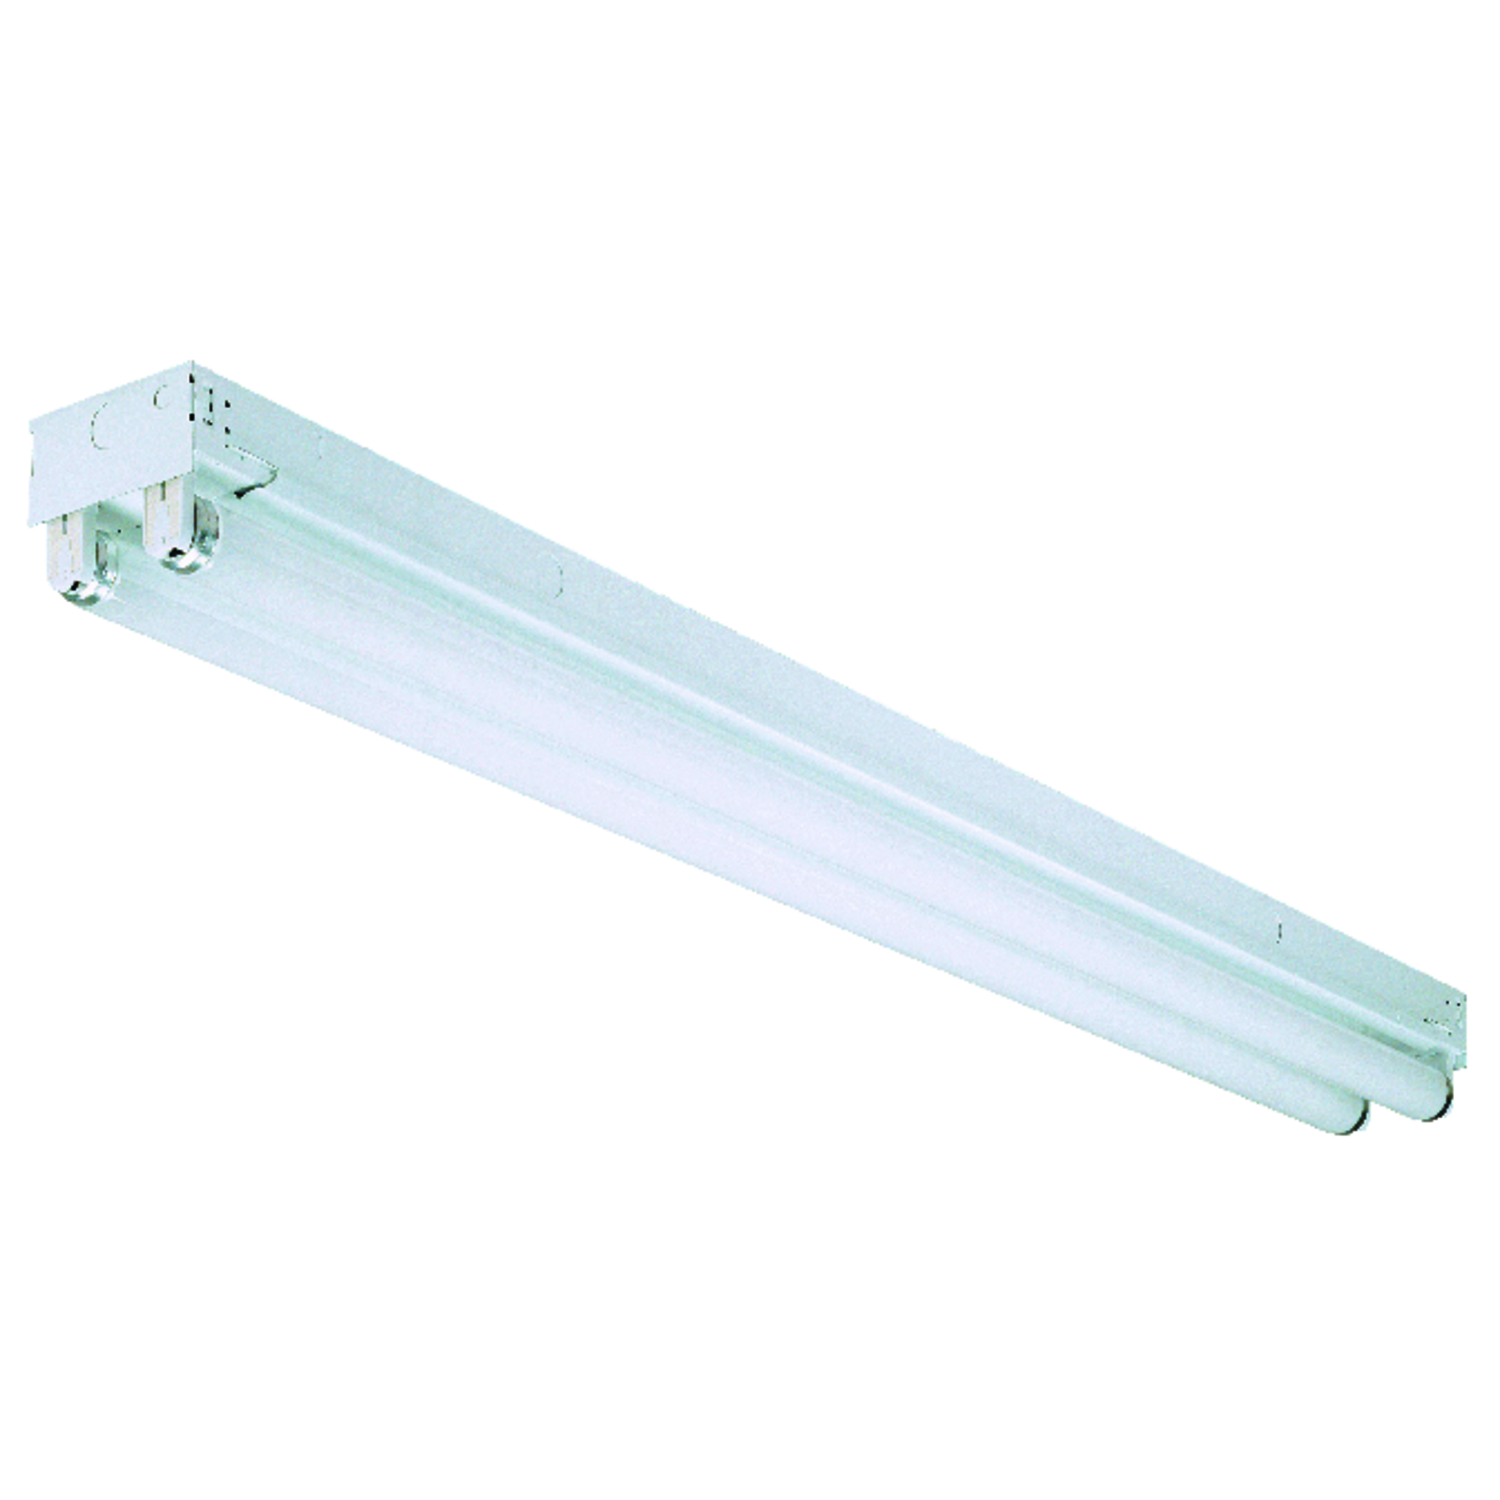 Exceptionnel Lithonia Lighting 48 In. L Hardwired Strip Light White